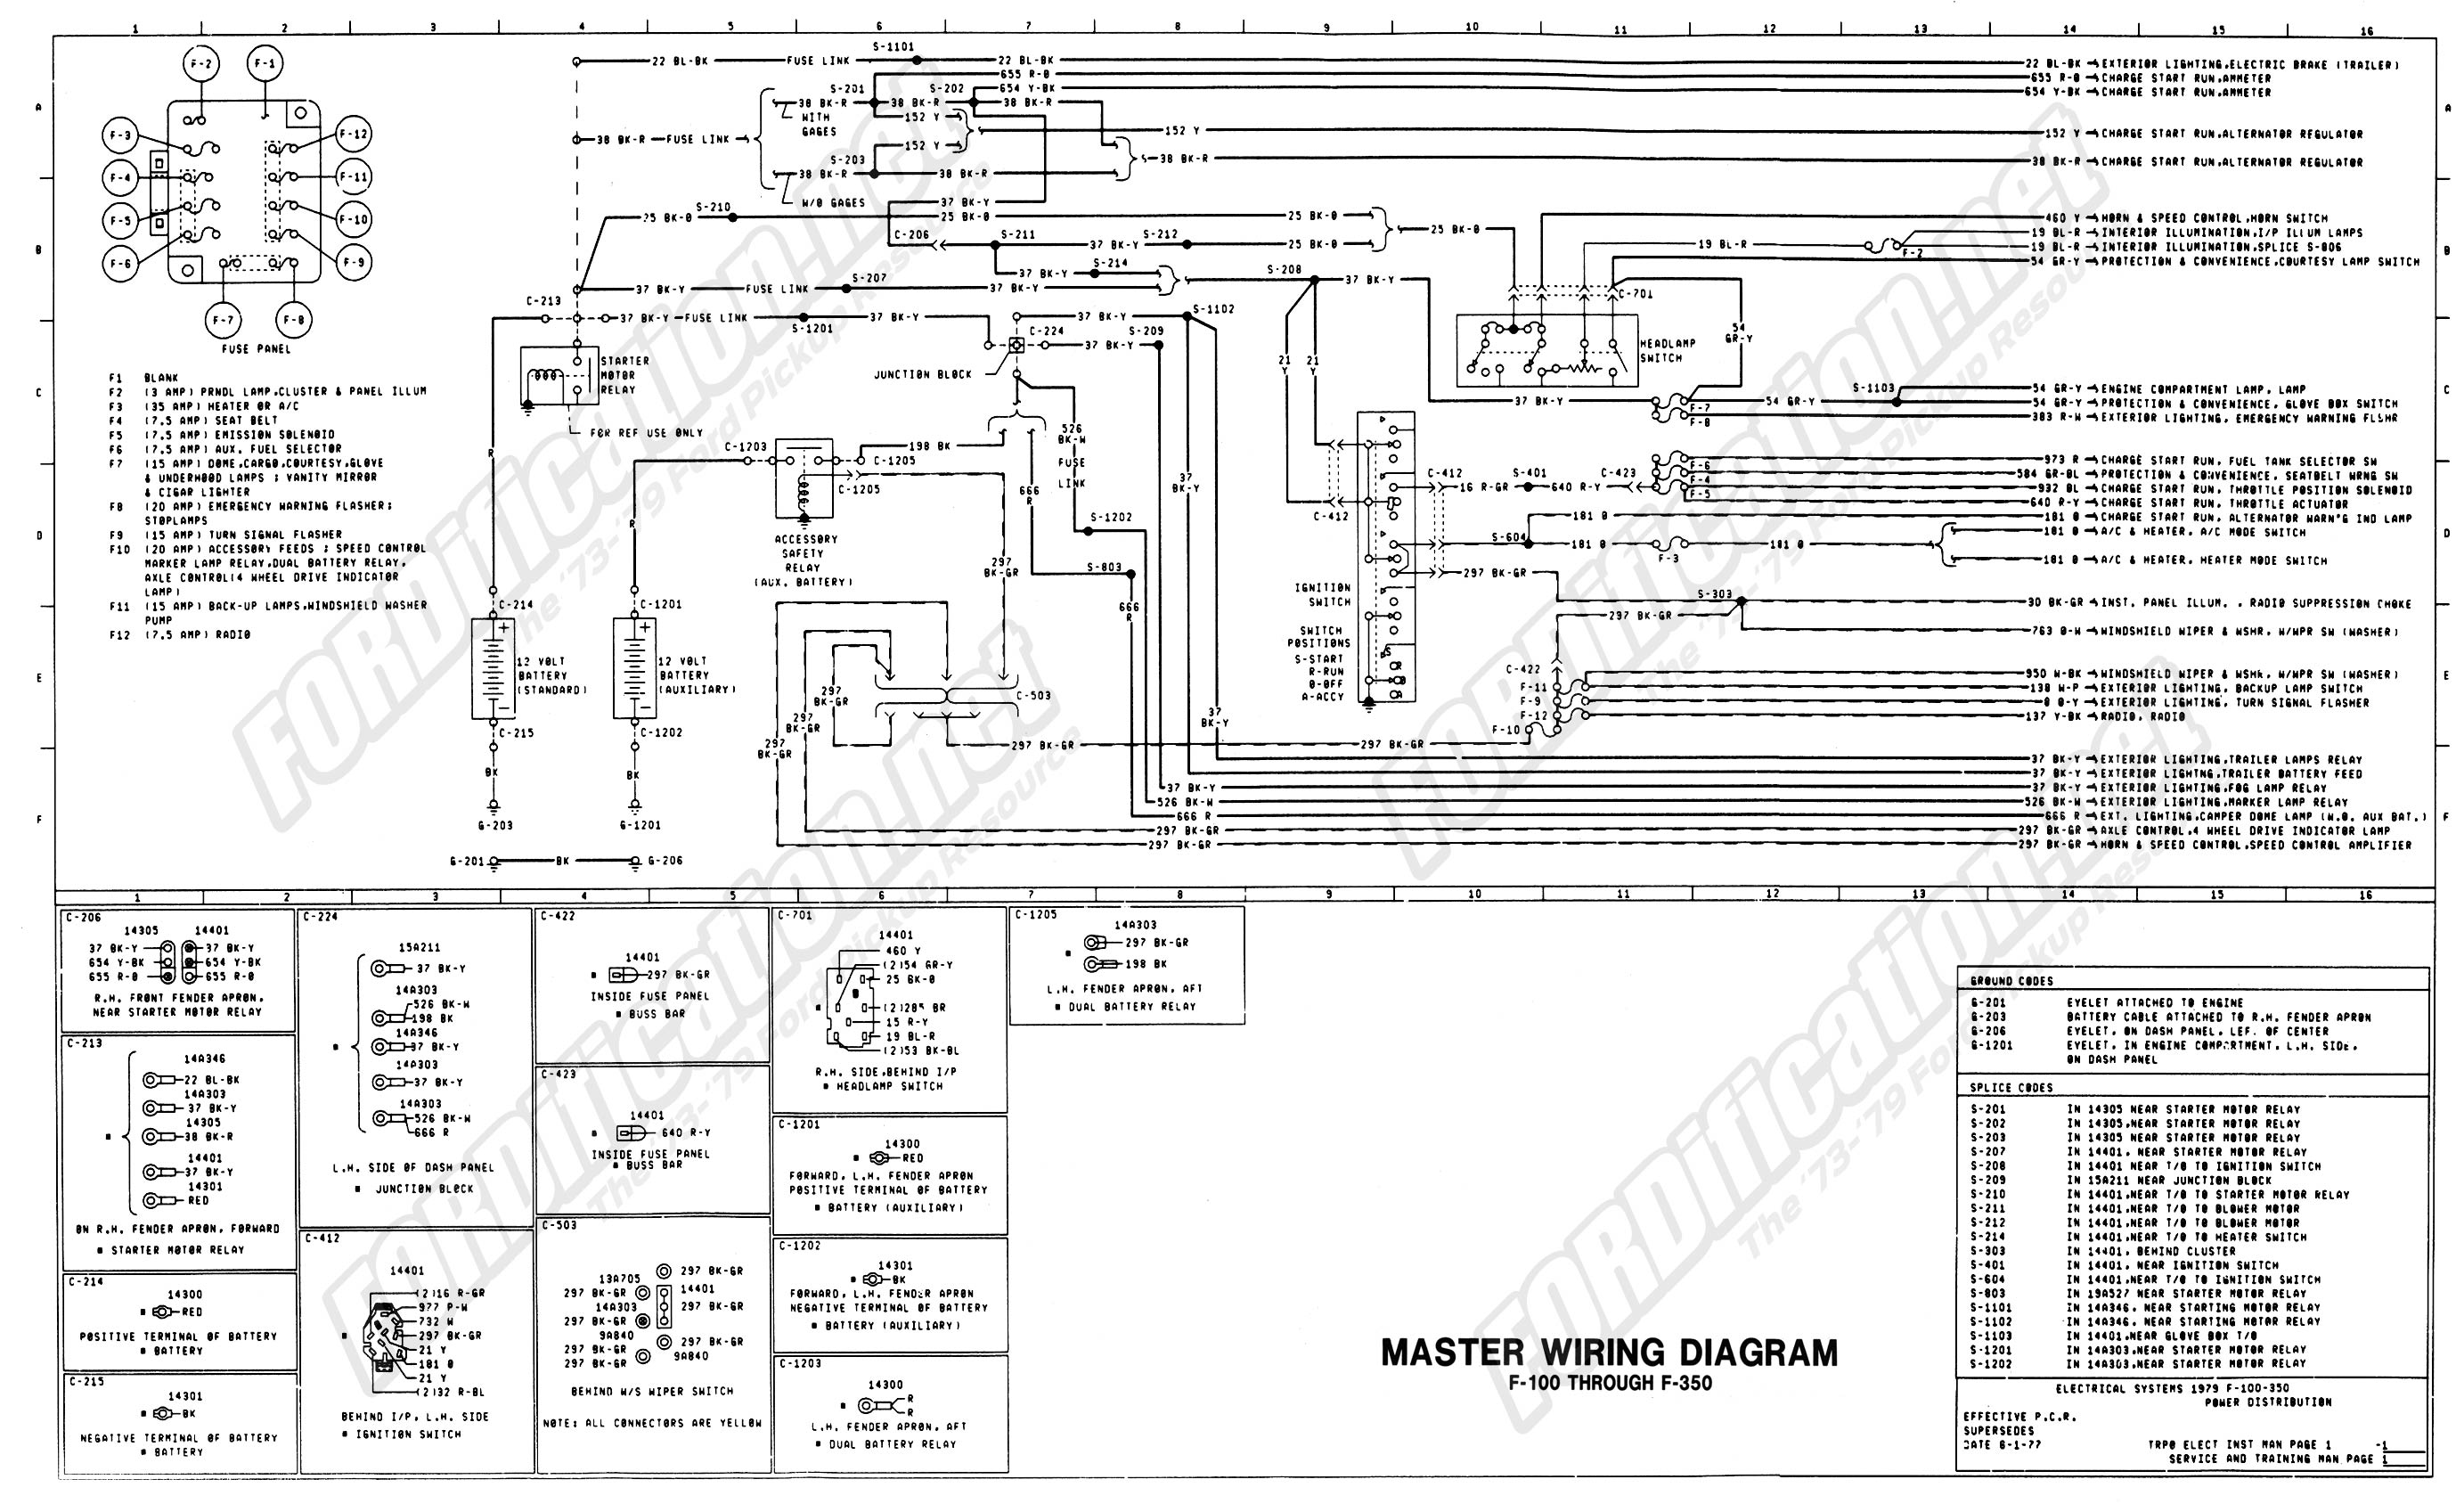 wiring_79master_1of9 wiring diagram for 1977 ford f150 readingrat net 2006 ford f150 ignition wiring diagram at mifinder.co